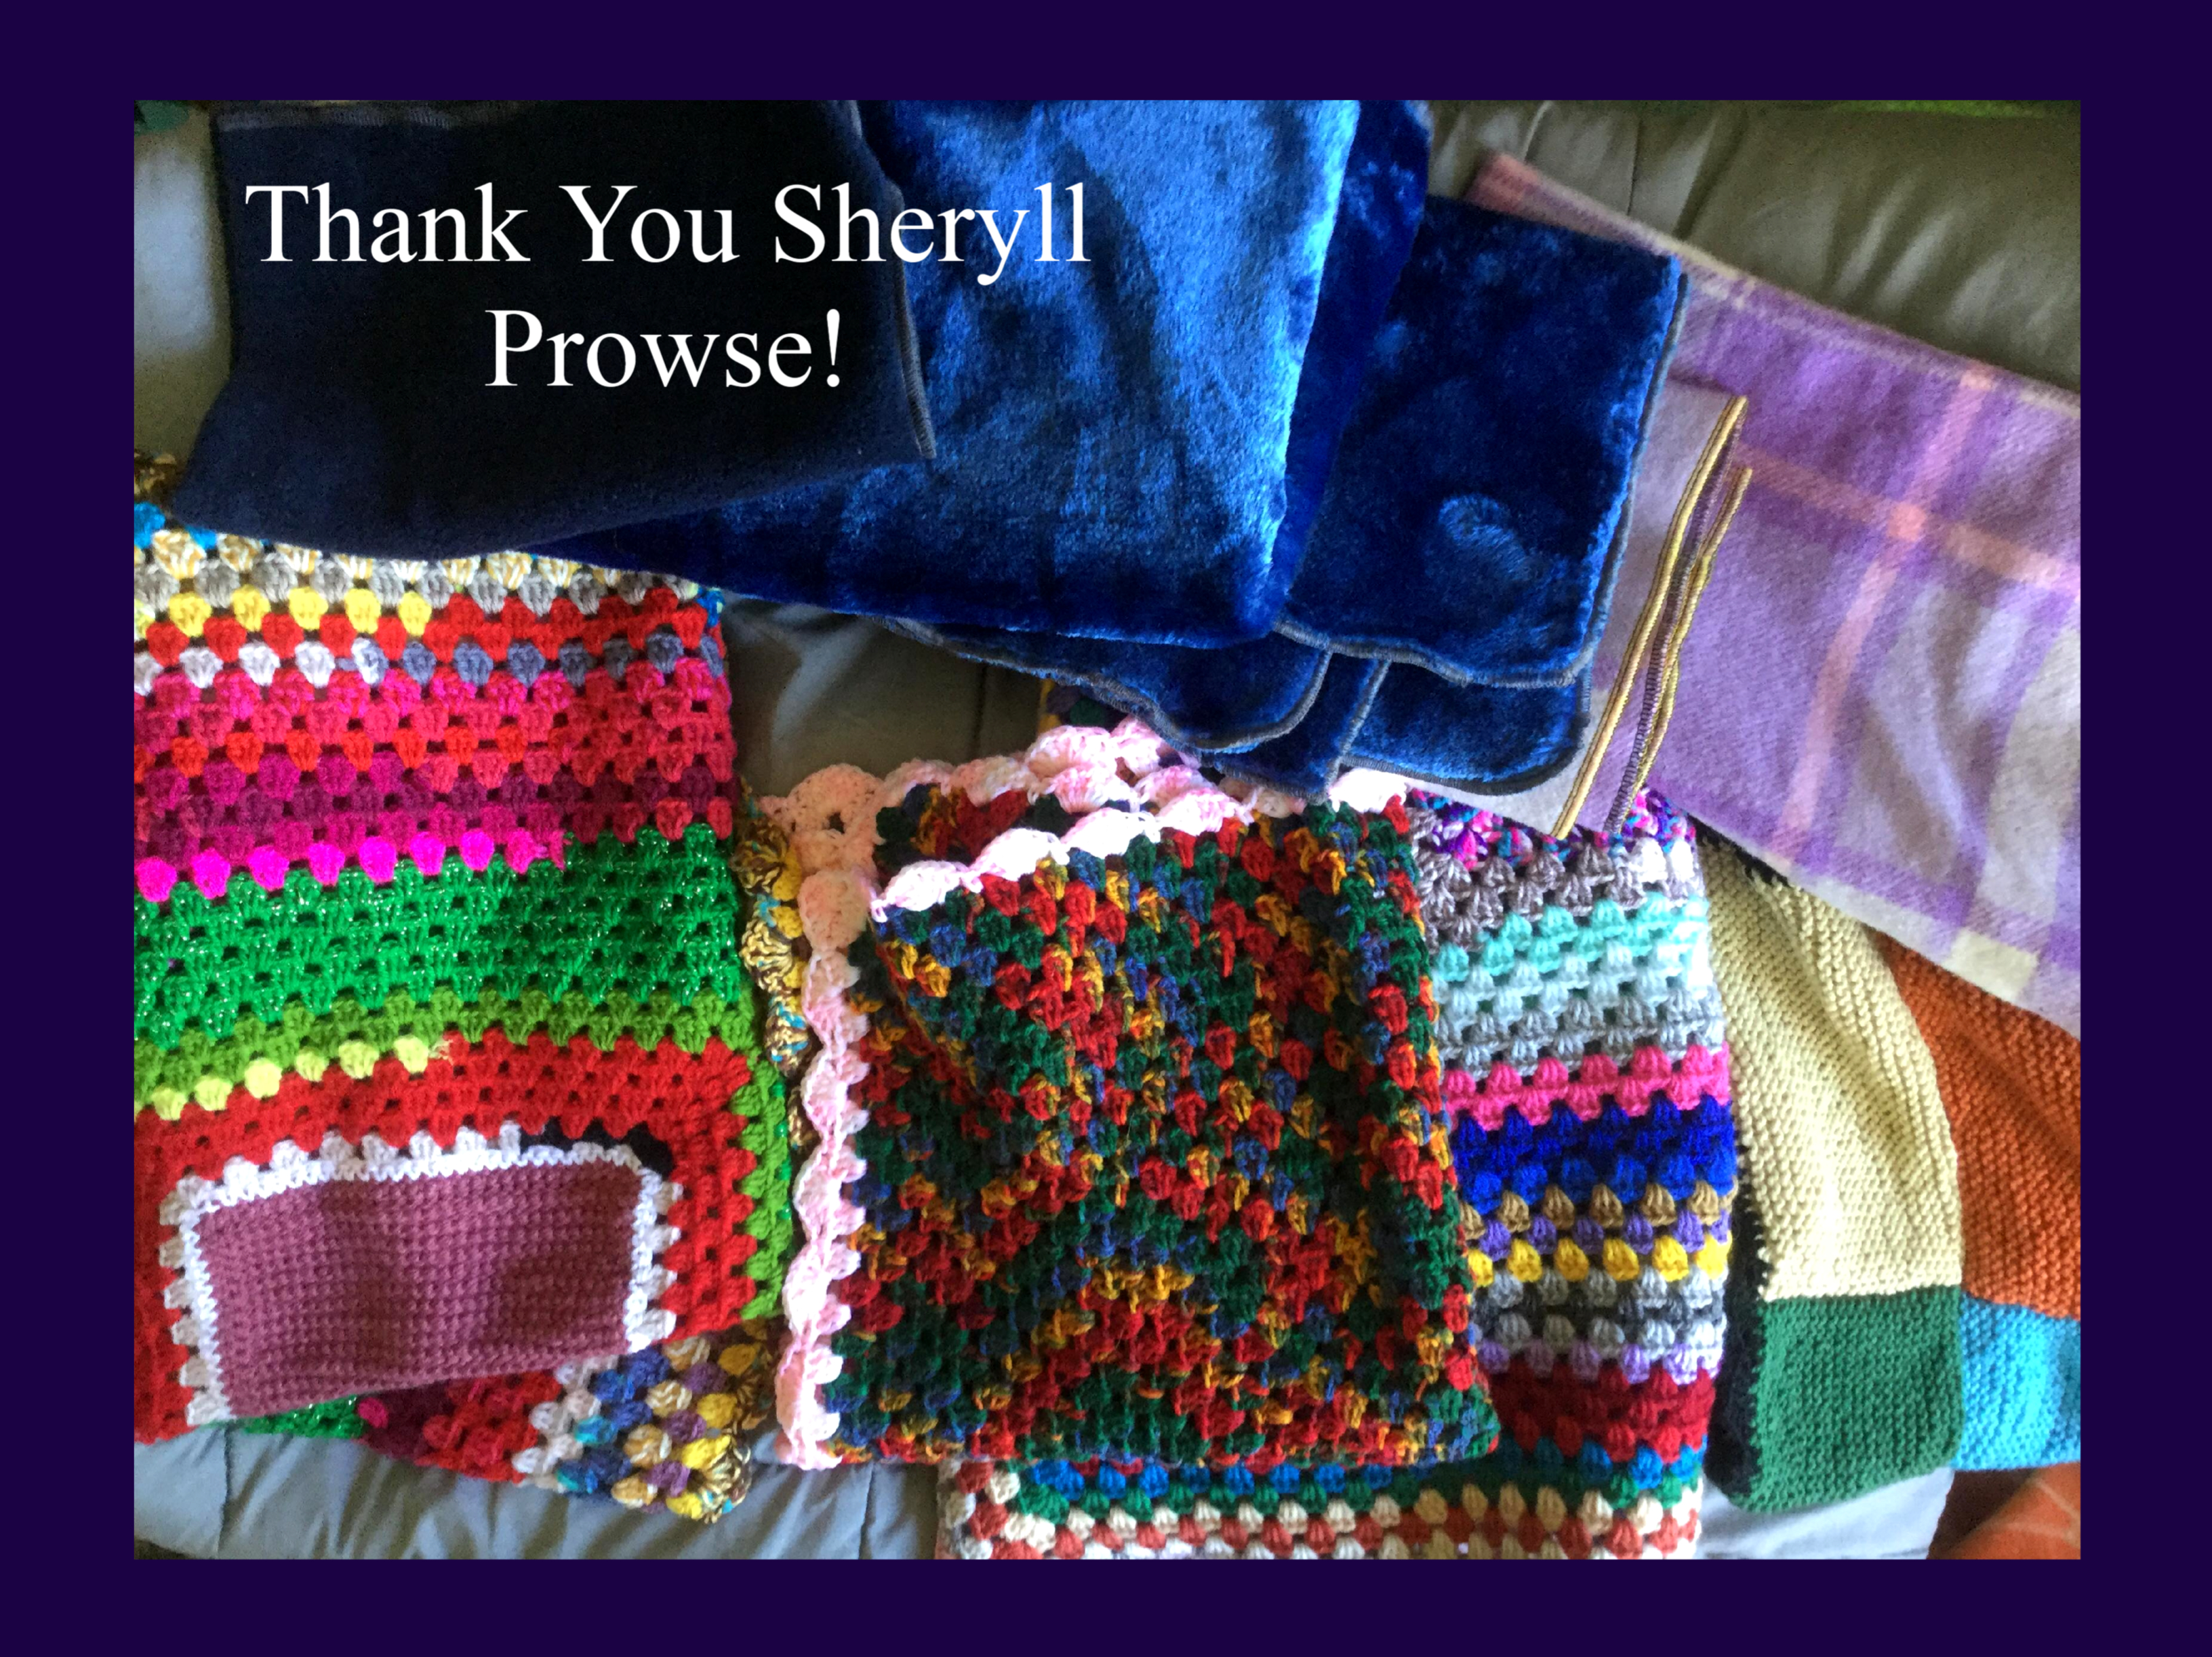 Sheryll's Beautiful Blankets gallery image